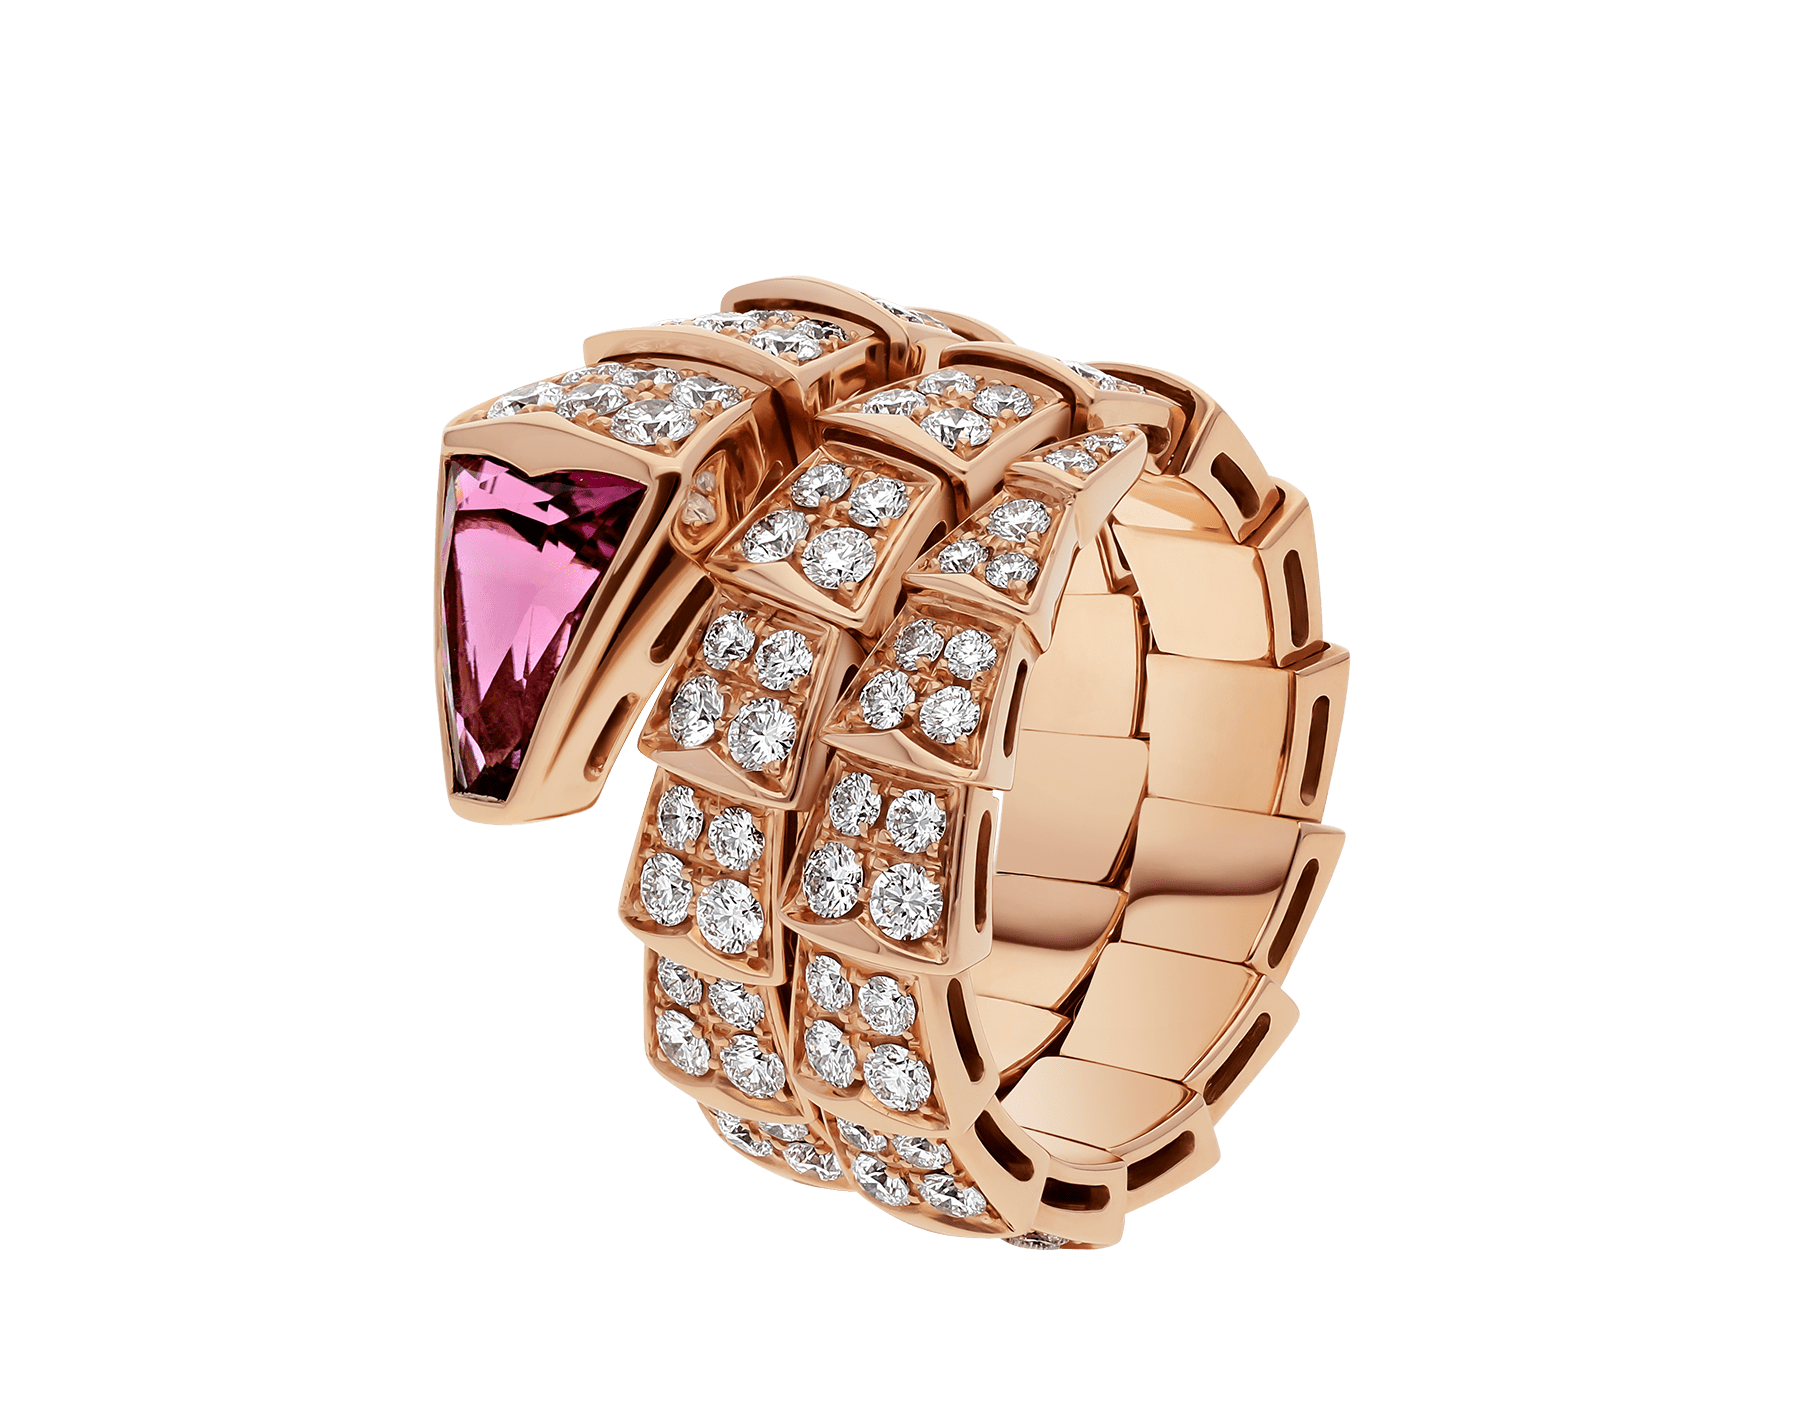 Serpenti two-coil ring in 18 kt rose gold, set with full pavé diamonds and a rubellite on the head. AN856156 image 1